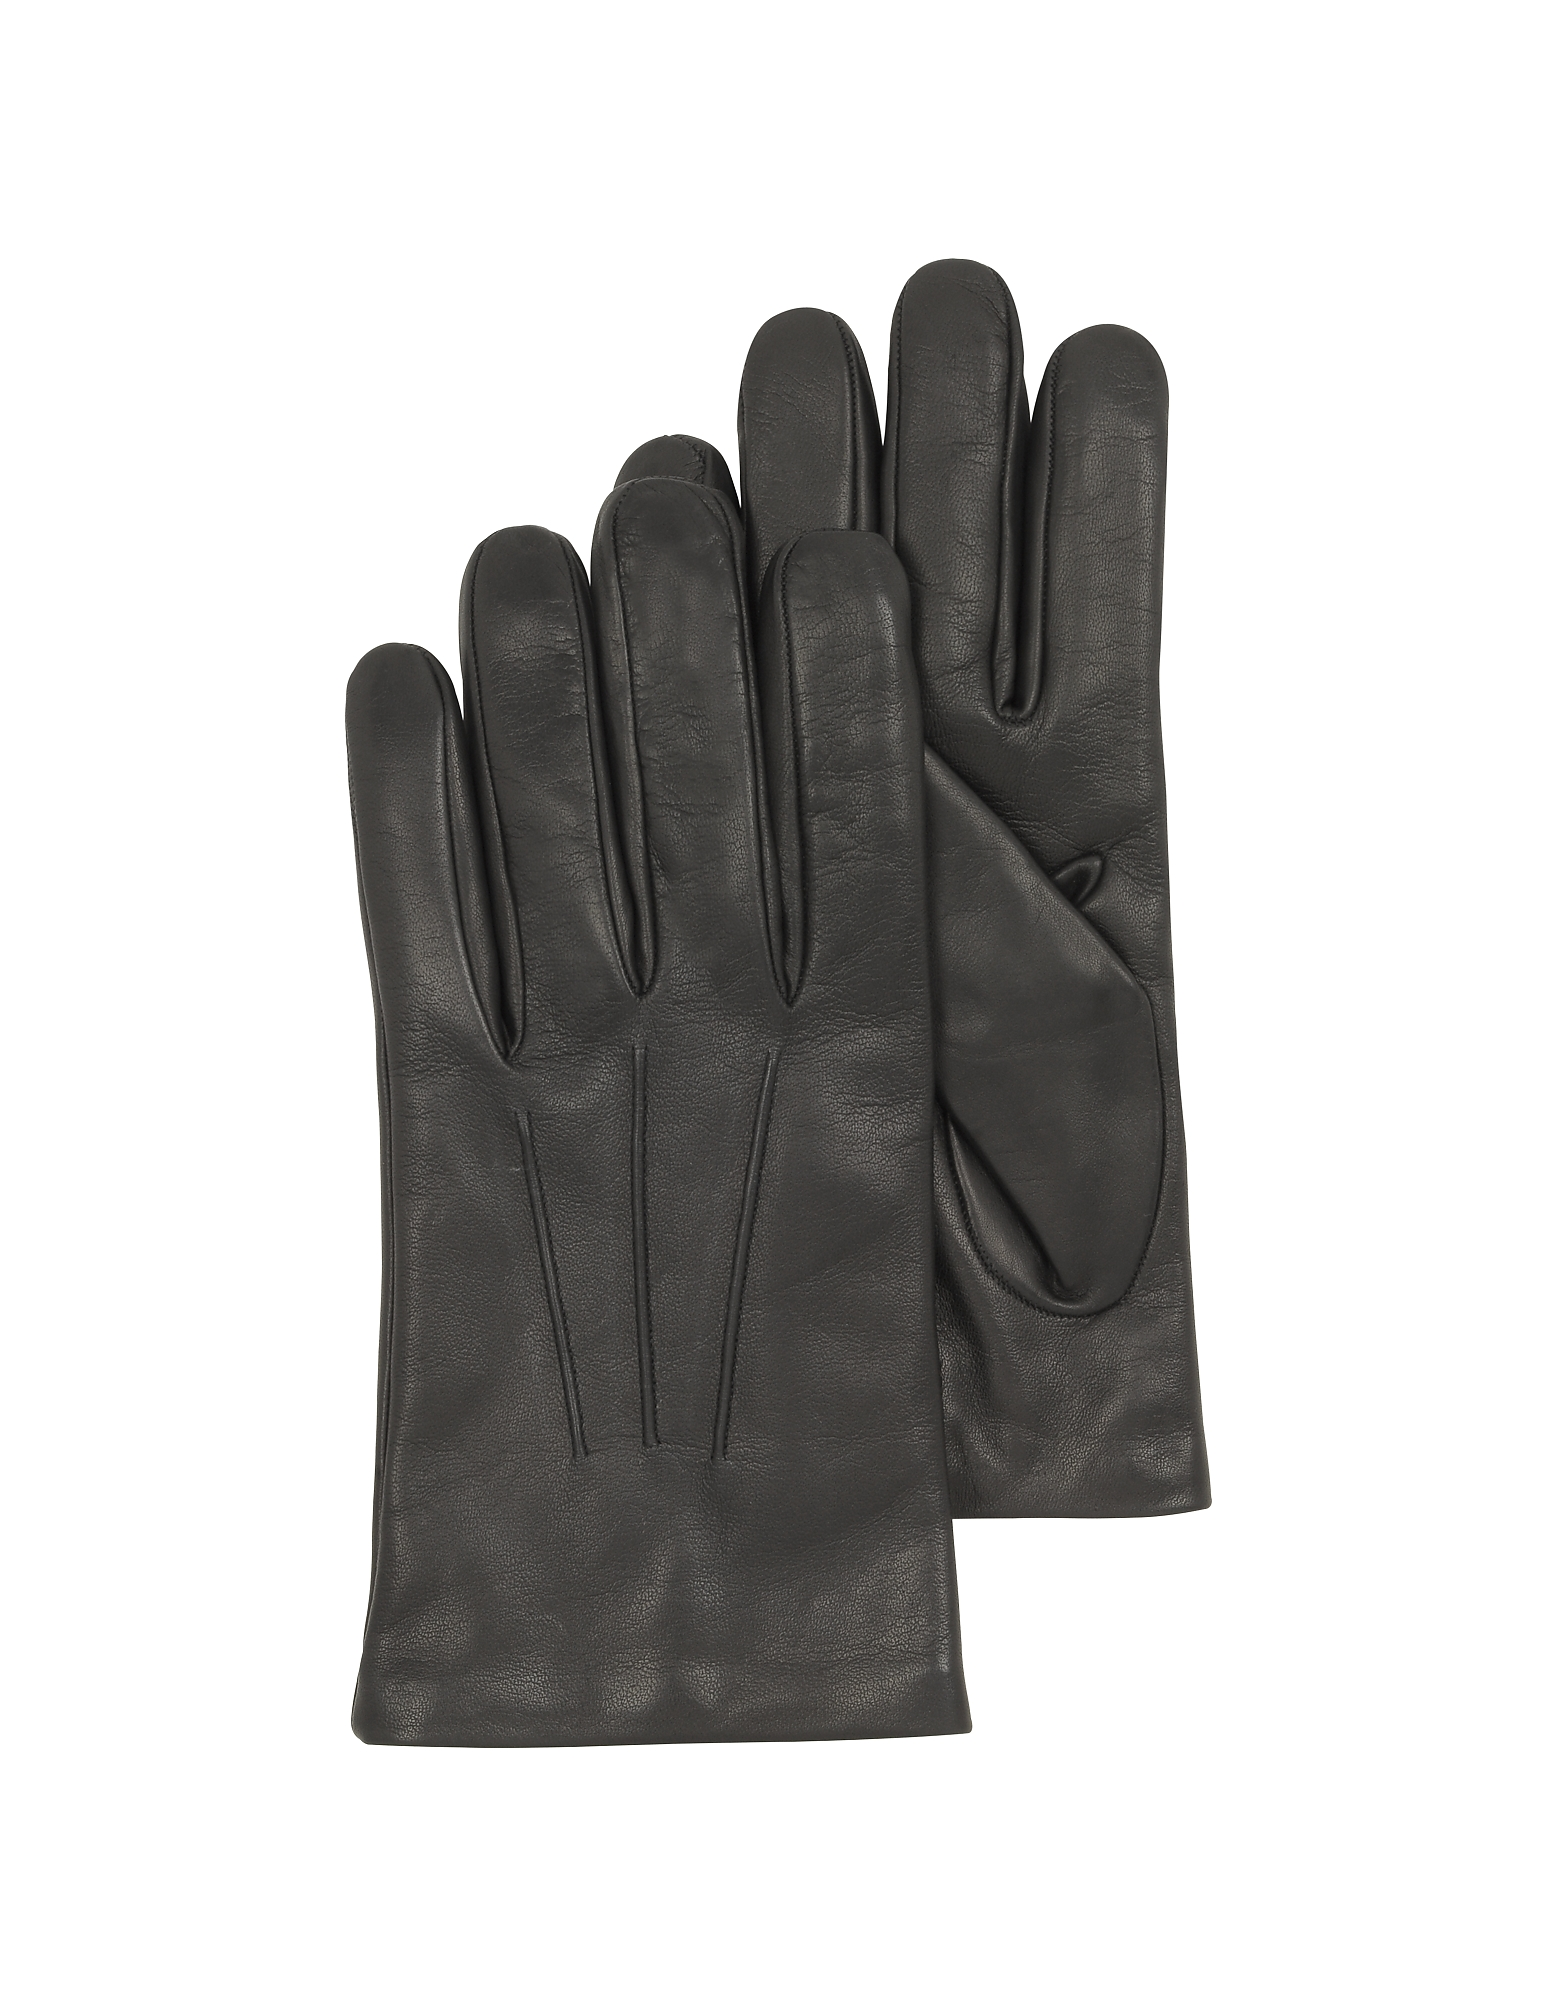 Forzieri Men's Gloves, Black Leather Handmade Men's Gloves w/Wool Lining